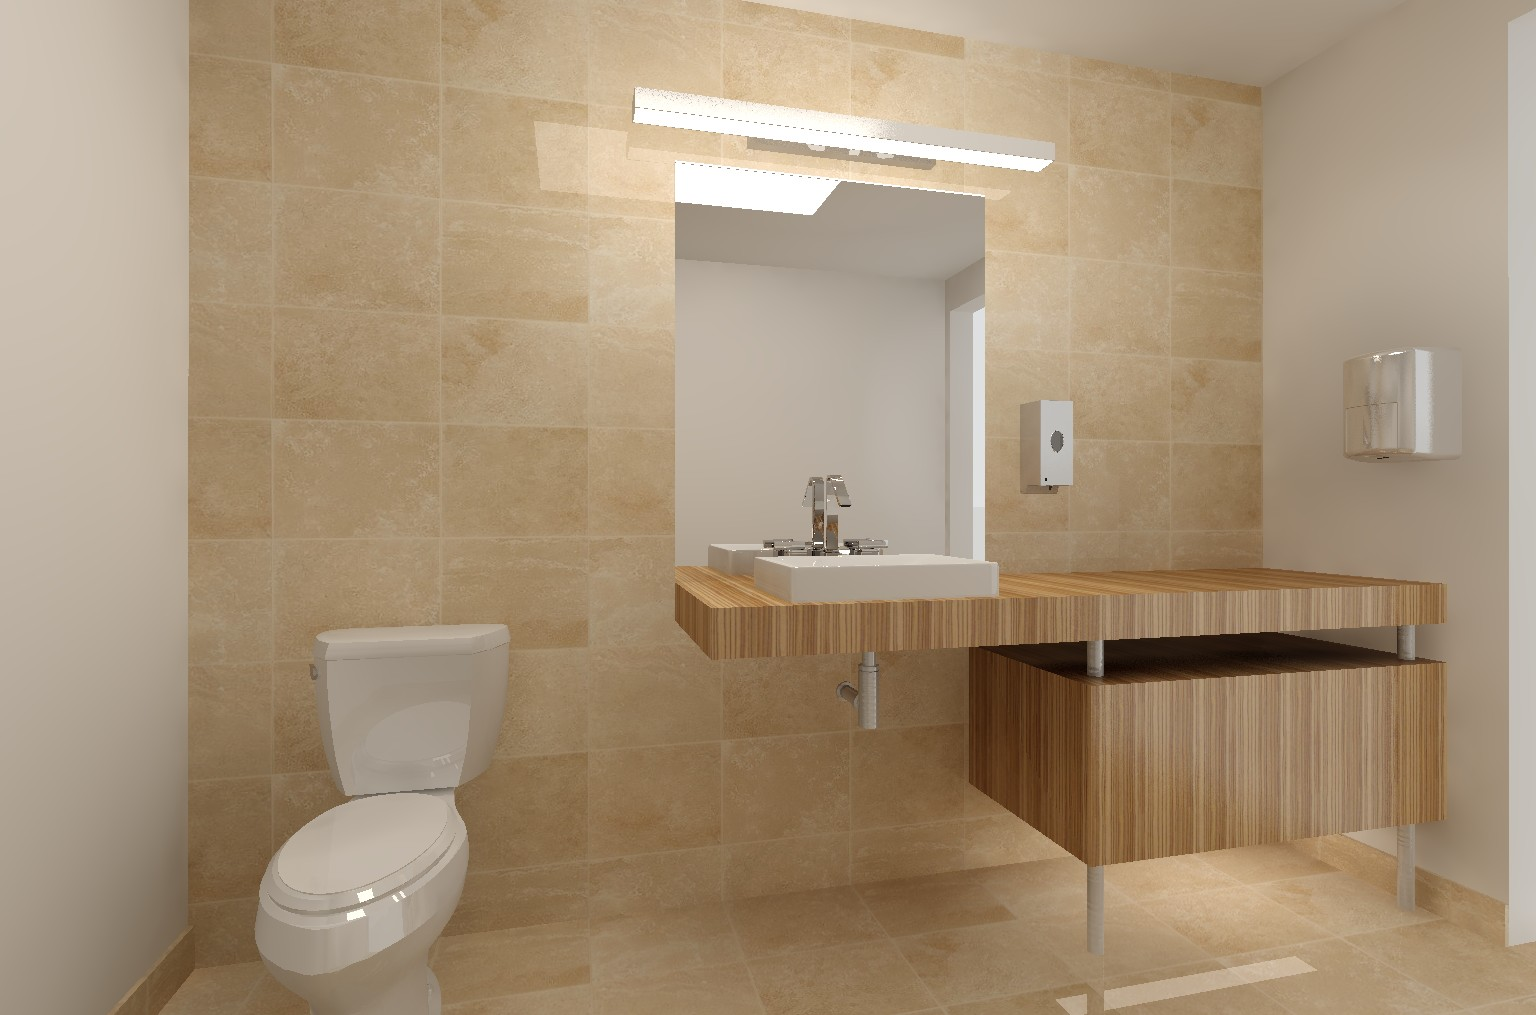 Portfolio labra design build for Office bathroom designs